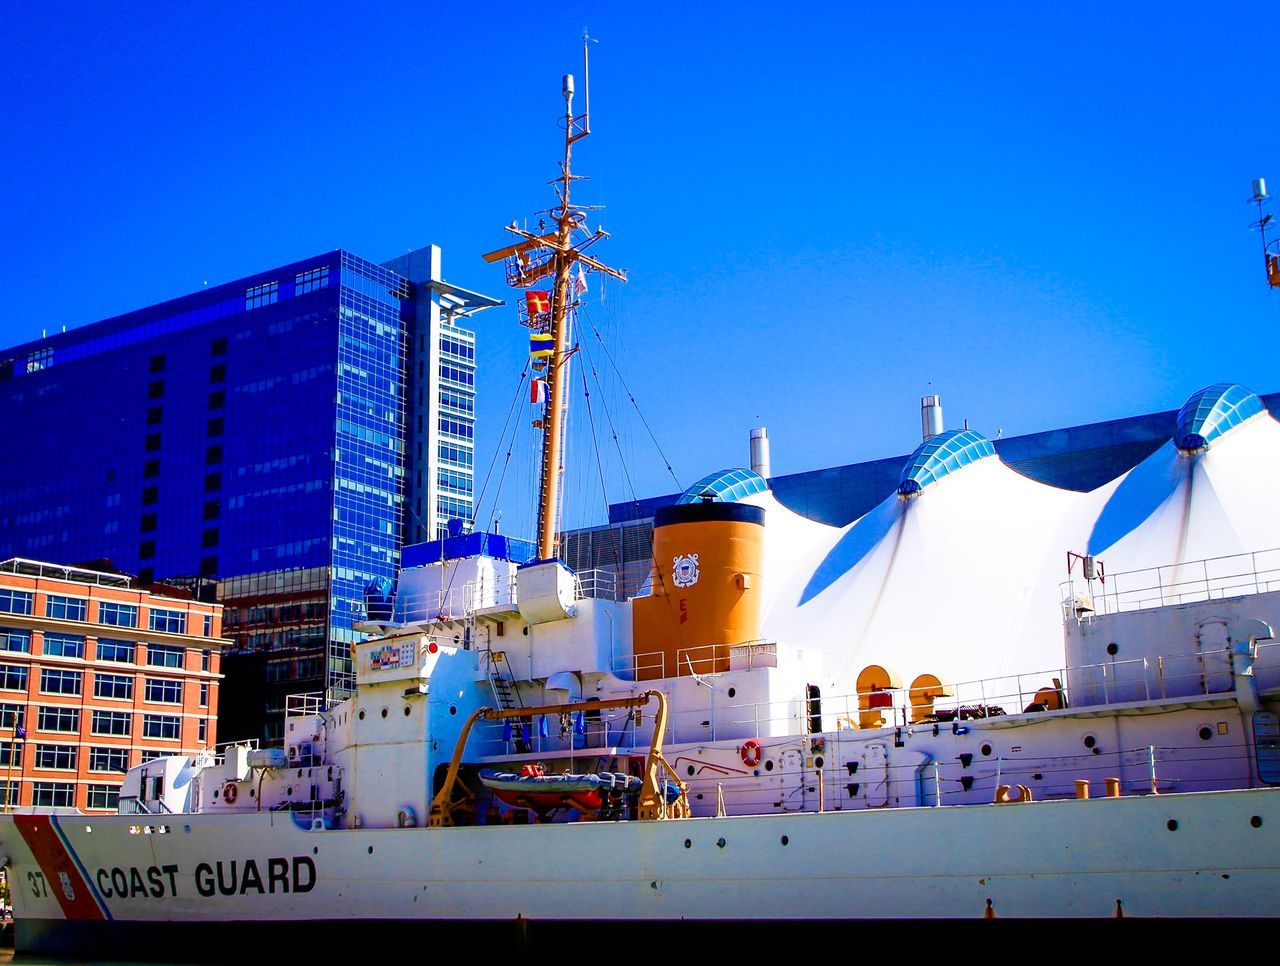 Coast Guard in Baltimore